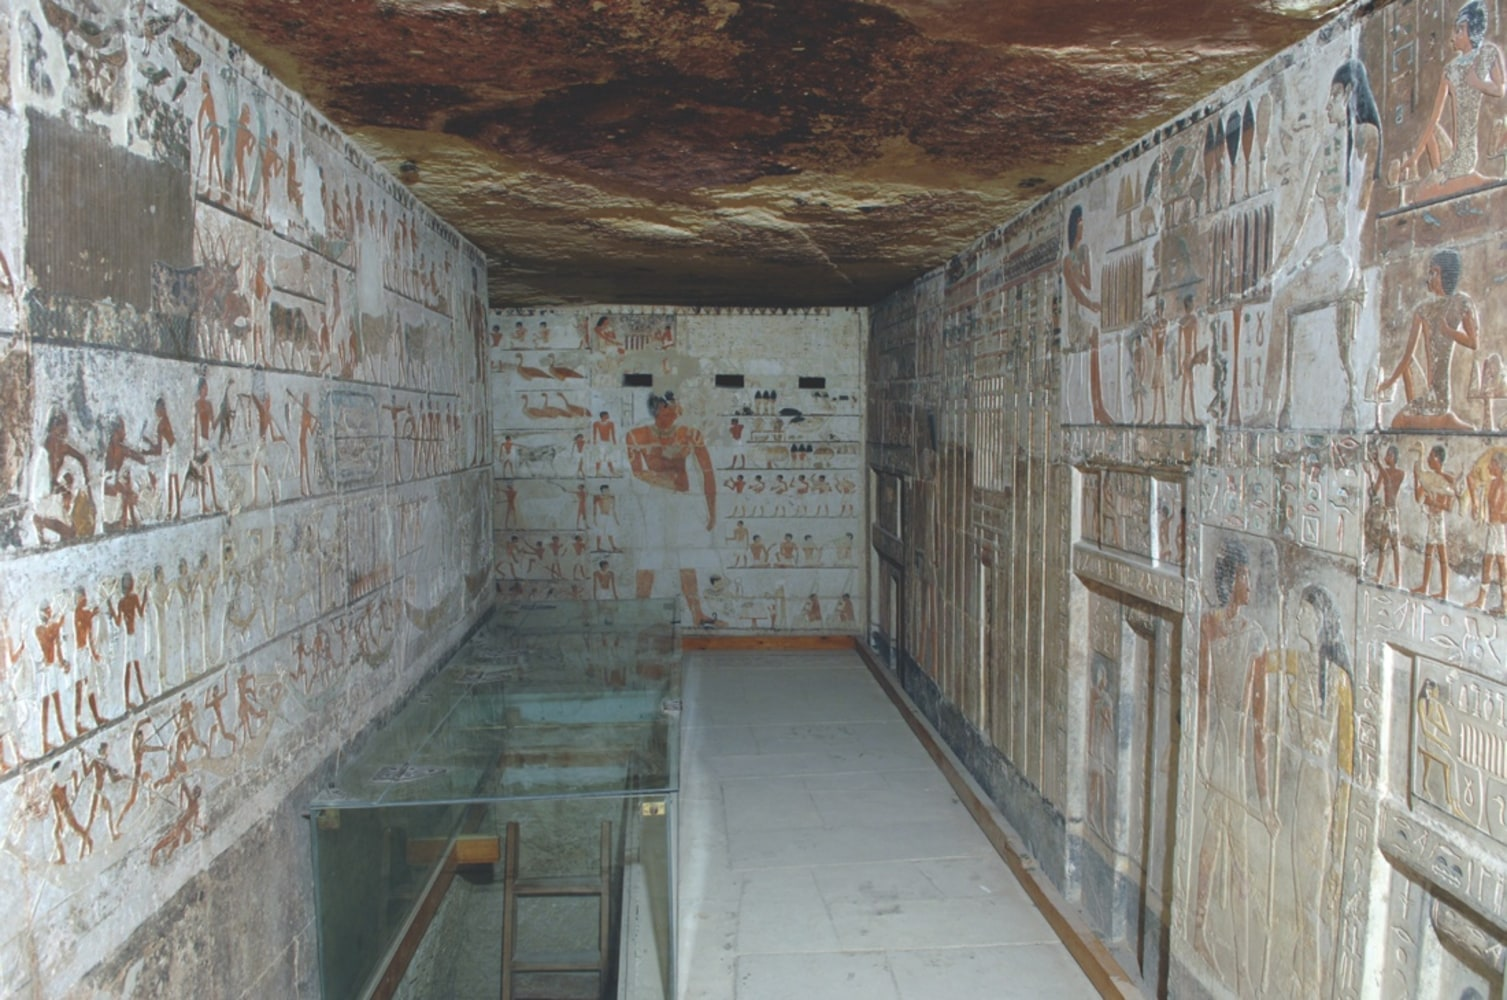 pyramids tombs History ancient egypt the ancient egyptian pyramids are some of the most impressive structures built by humans in ancient times many of the pyramids still survive today for us to see and explore.